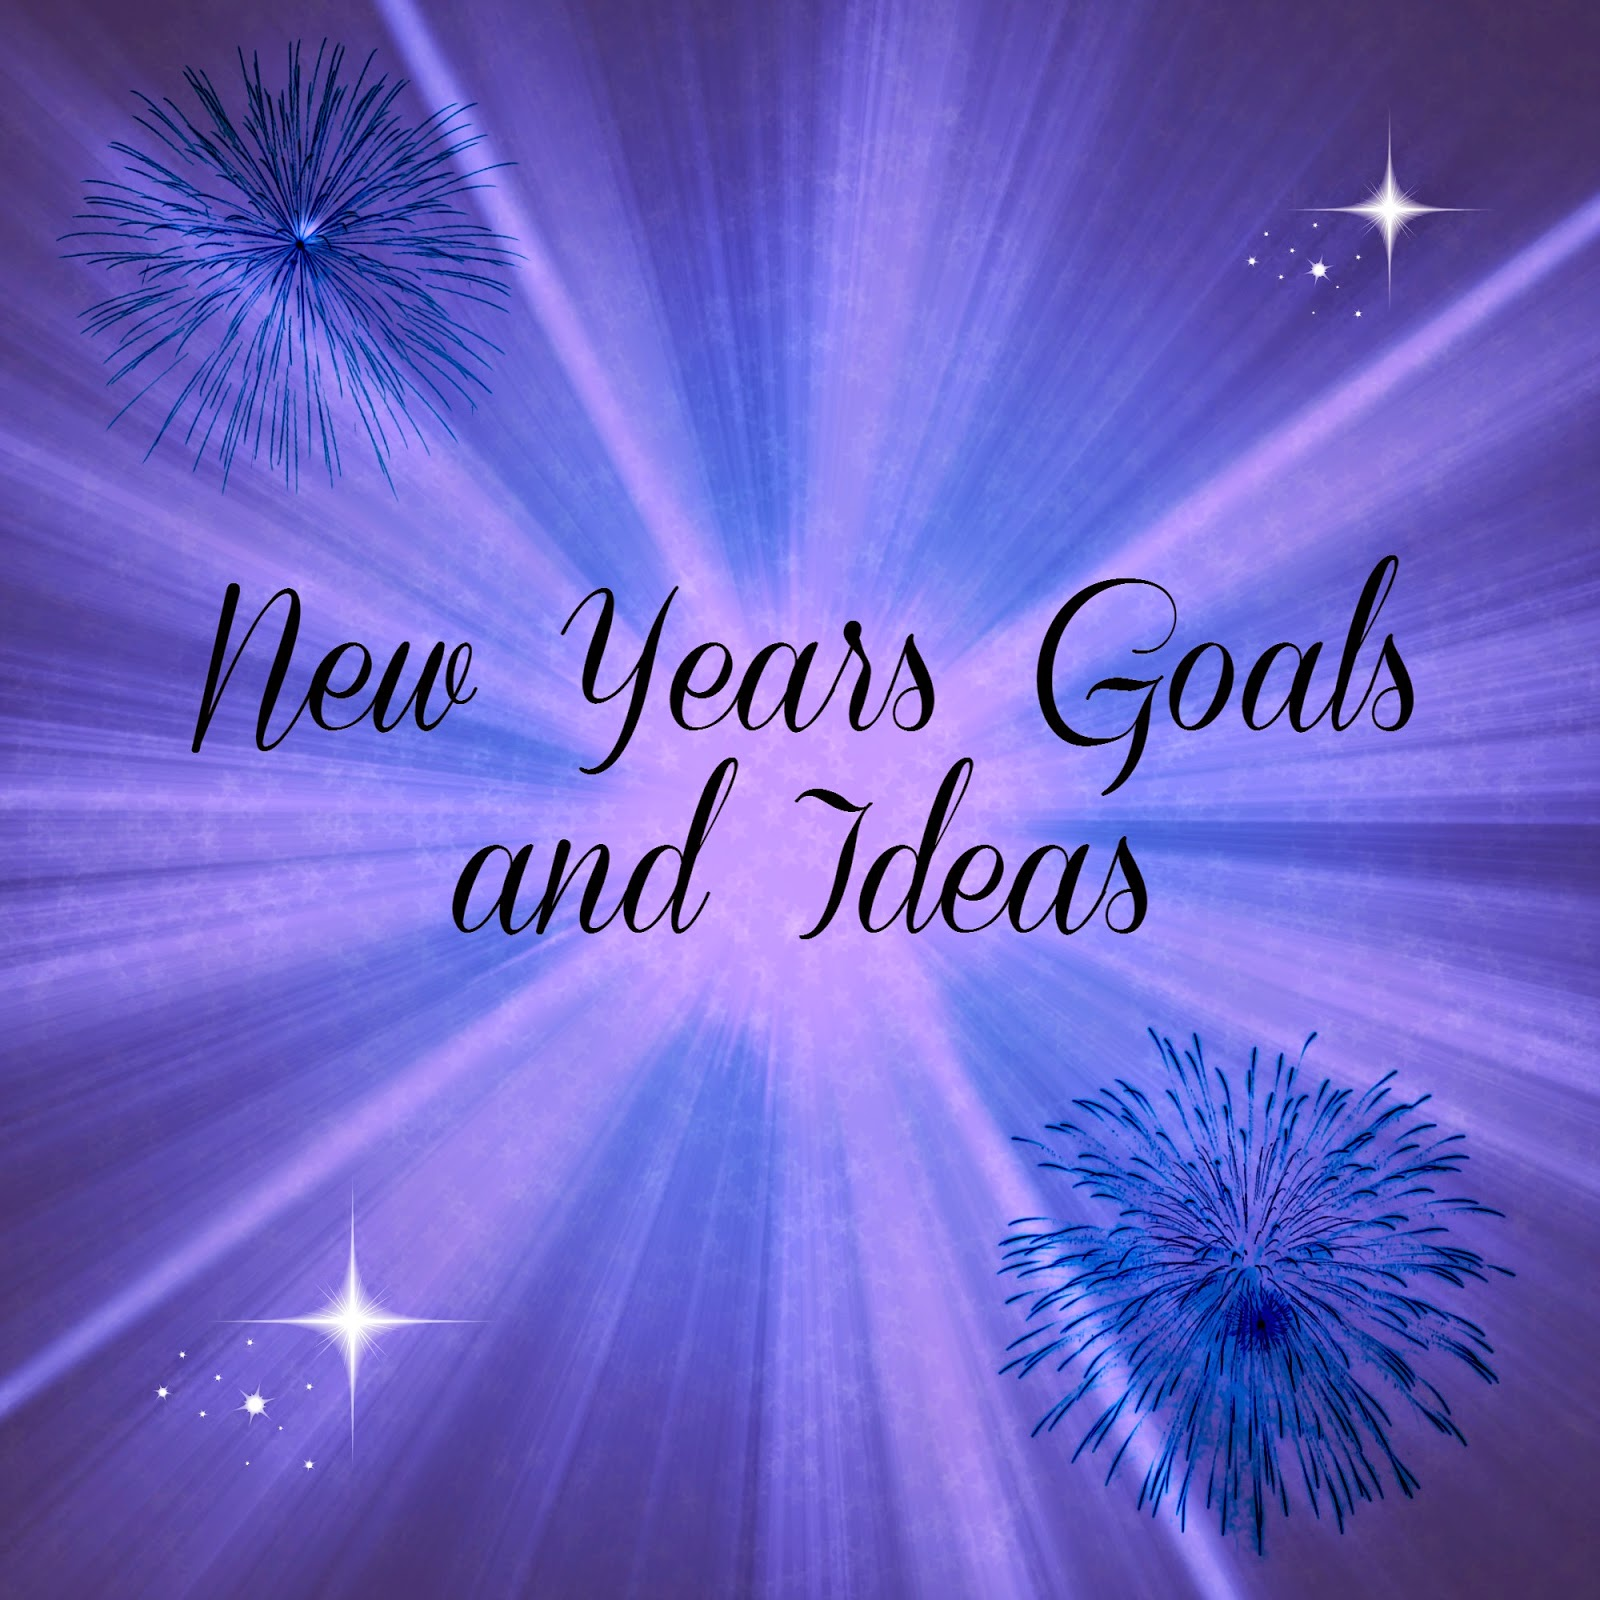 new years goals and ideas